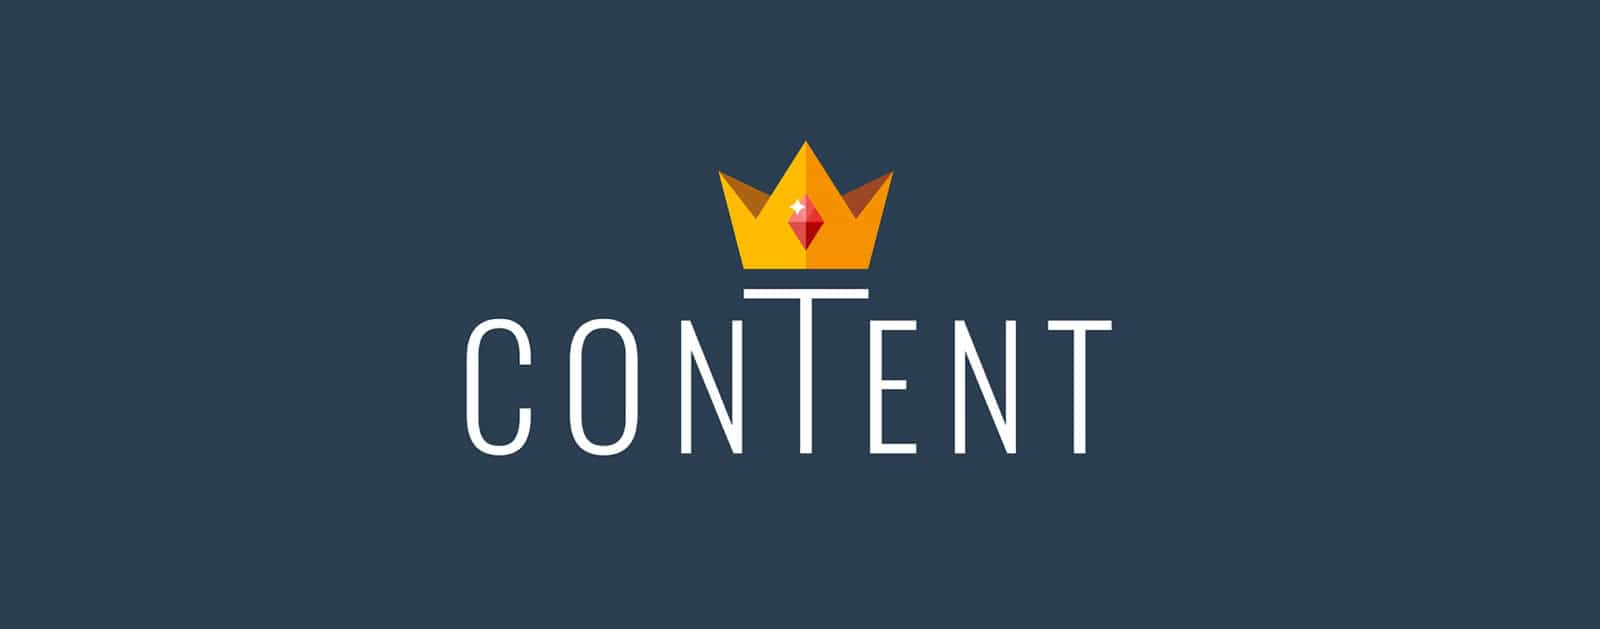 User intent based content is king